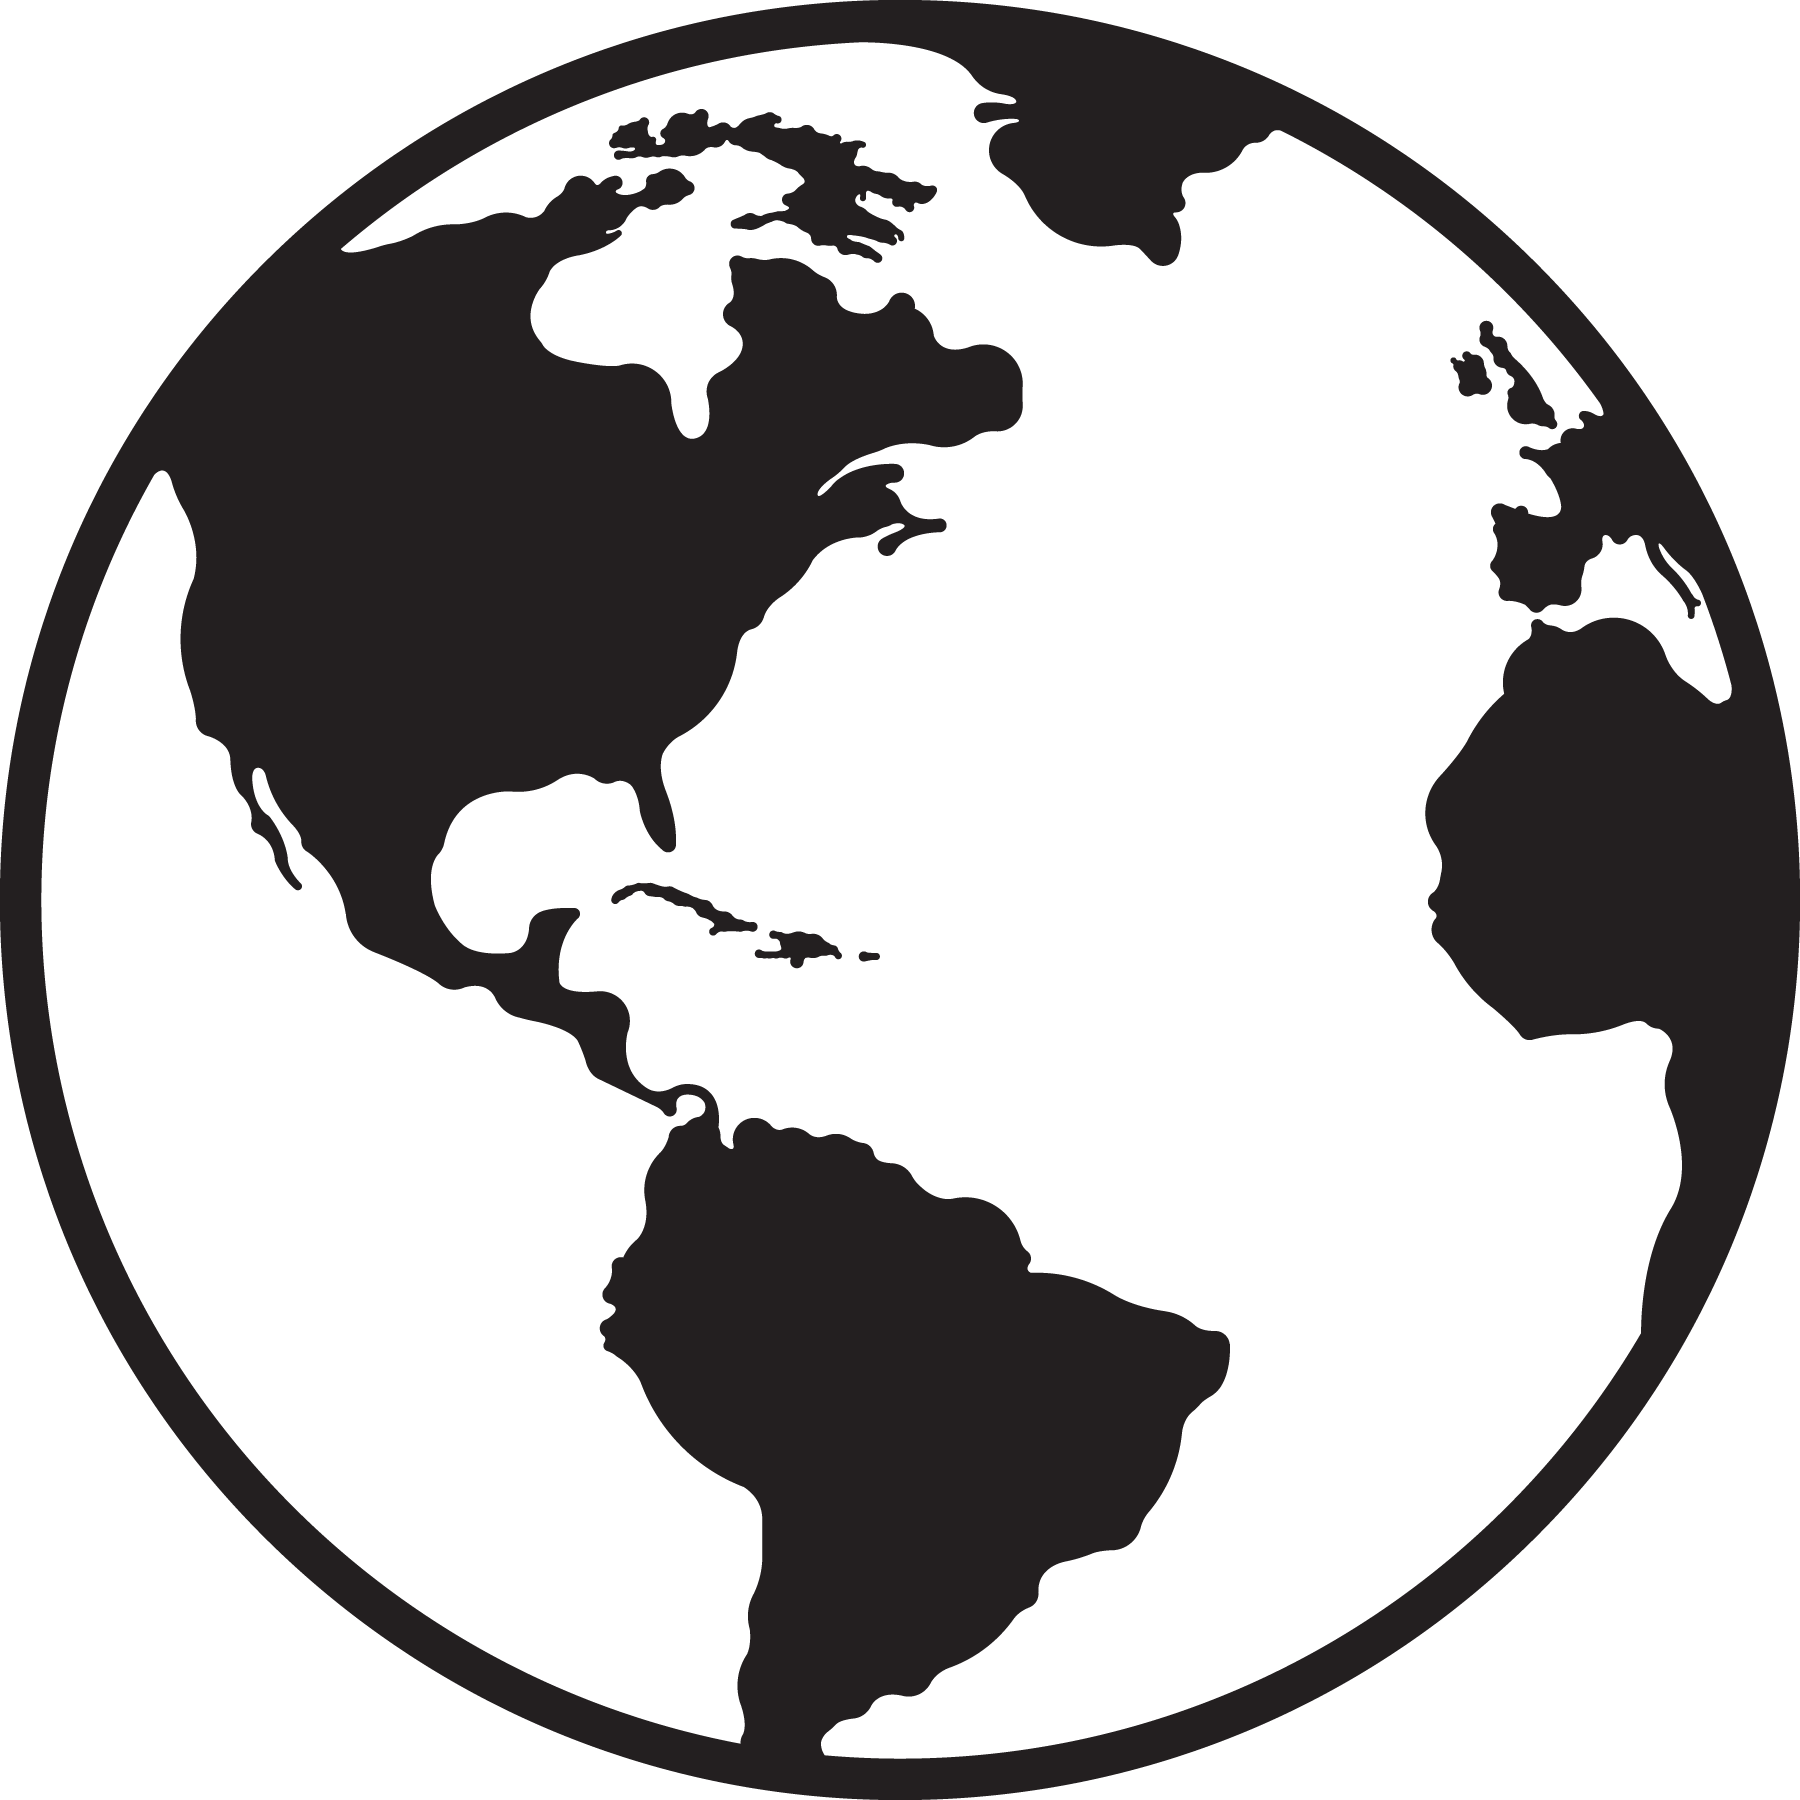 Globe vector clipart clipart stock Black and white globe clipart clipground – Gclipart.com clipart stock